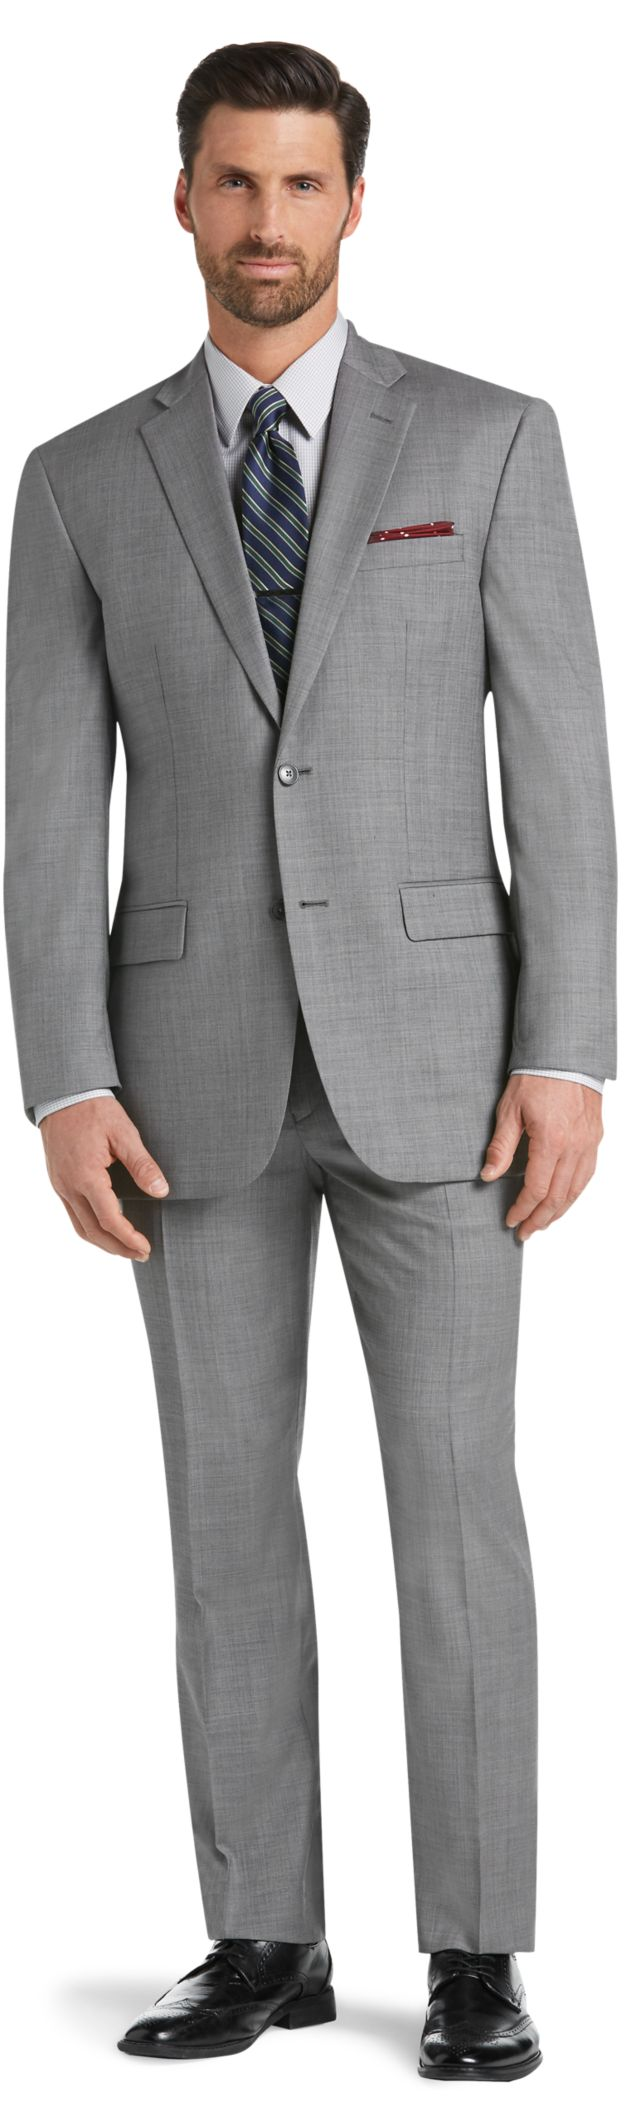 Wrinkle-Free & No Iron Suits | Traveler Suit Collection | JoS. A. Bank